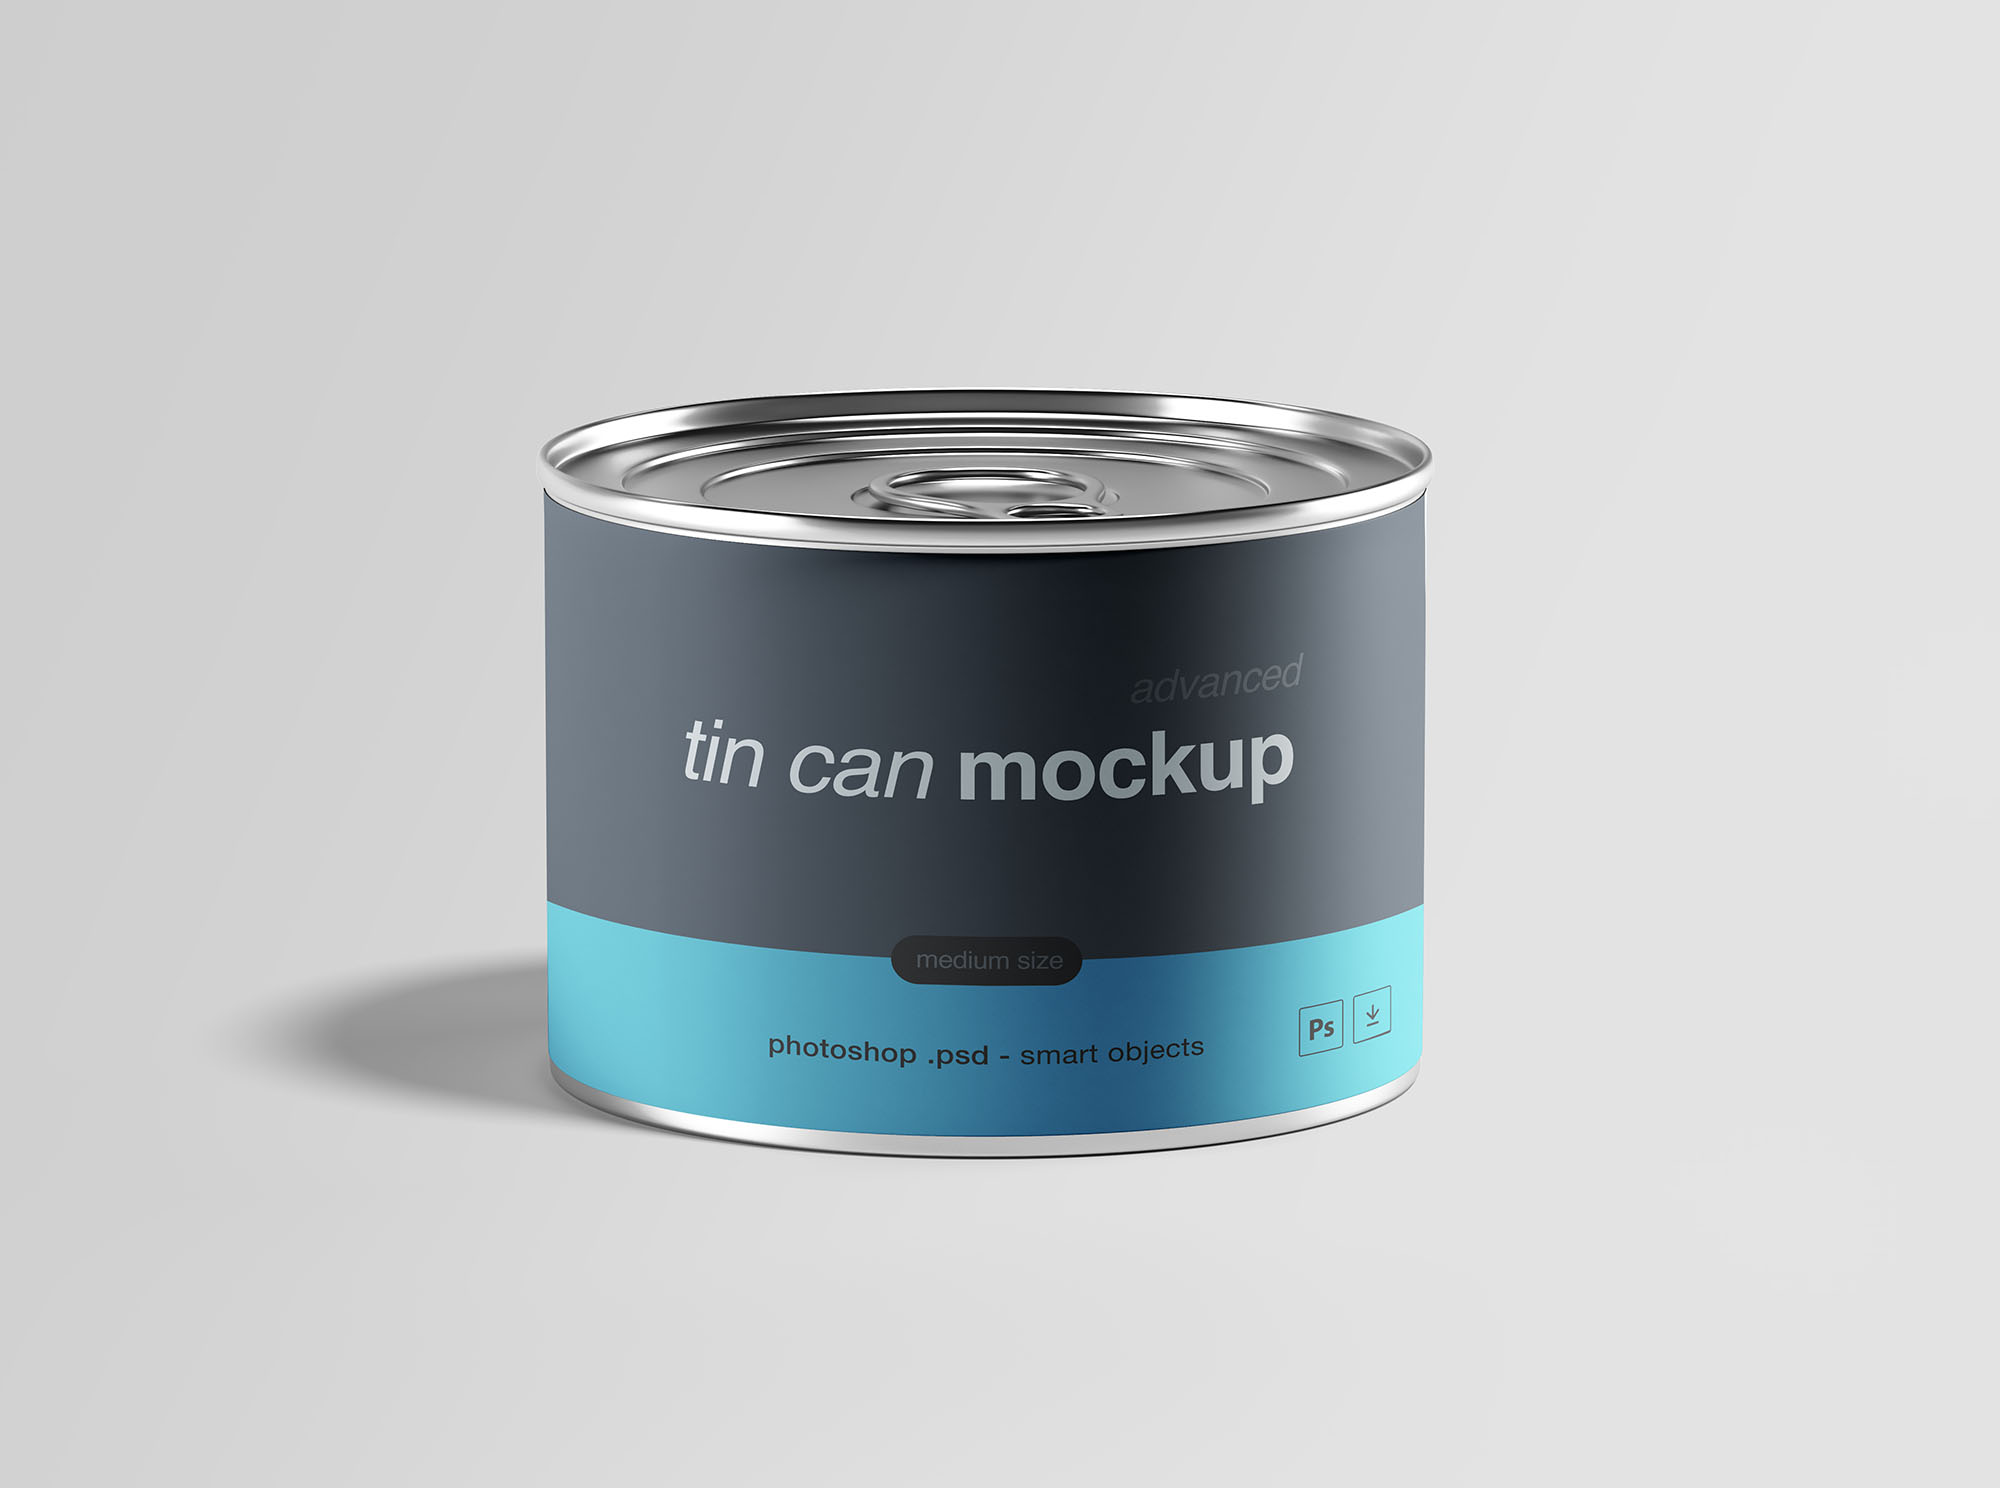 Tin Can Mockup PSD